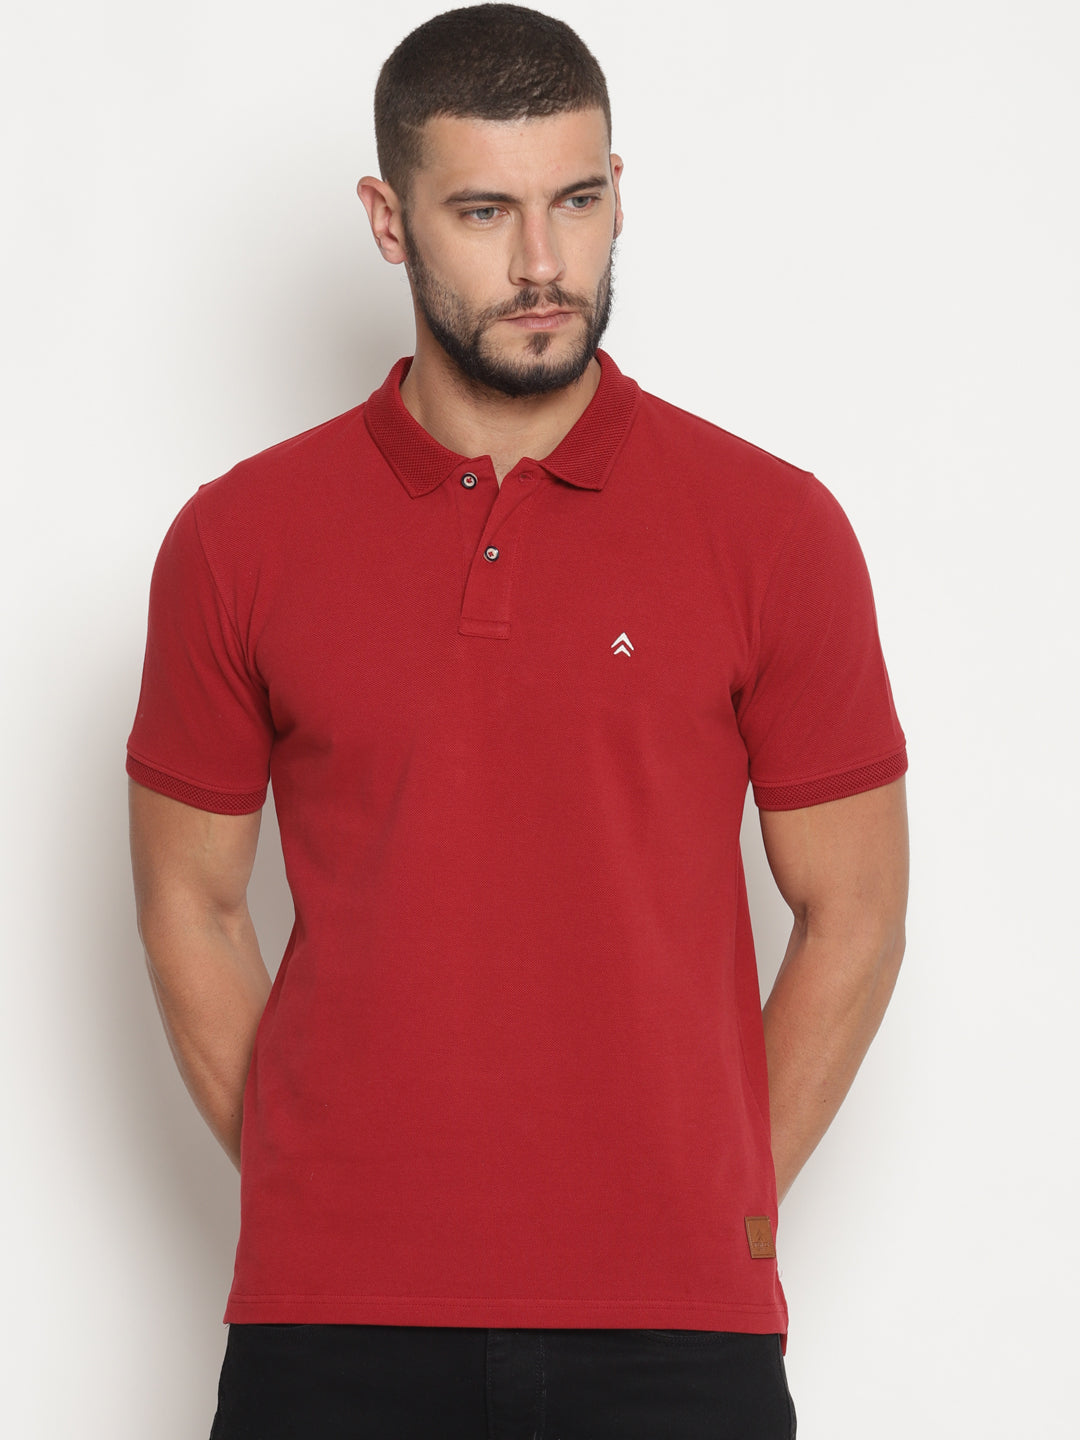 Men's Double Tuck Pique Indian Summer Polo T-Shirt